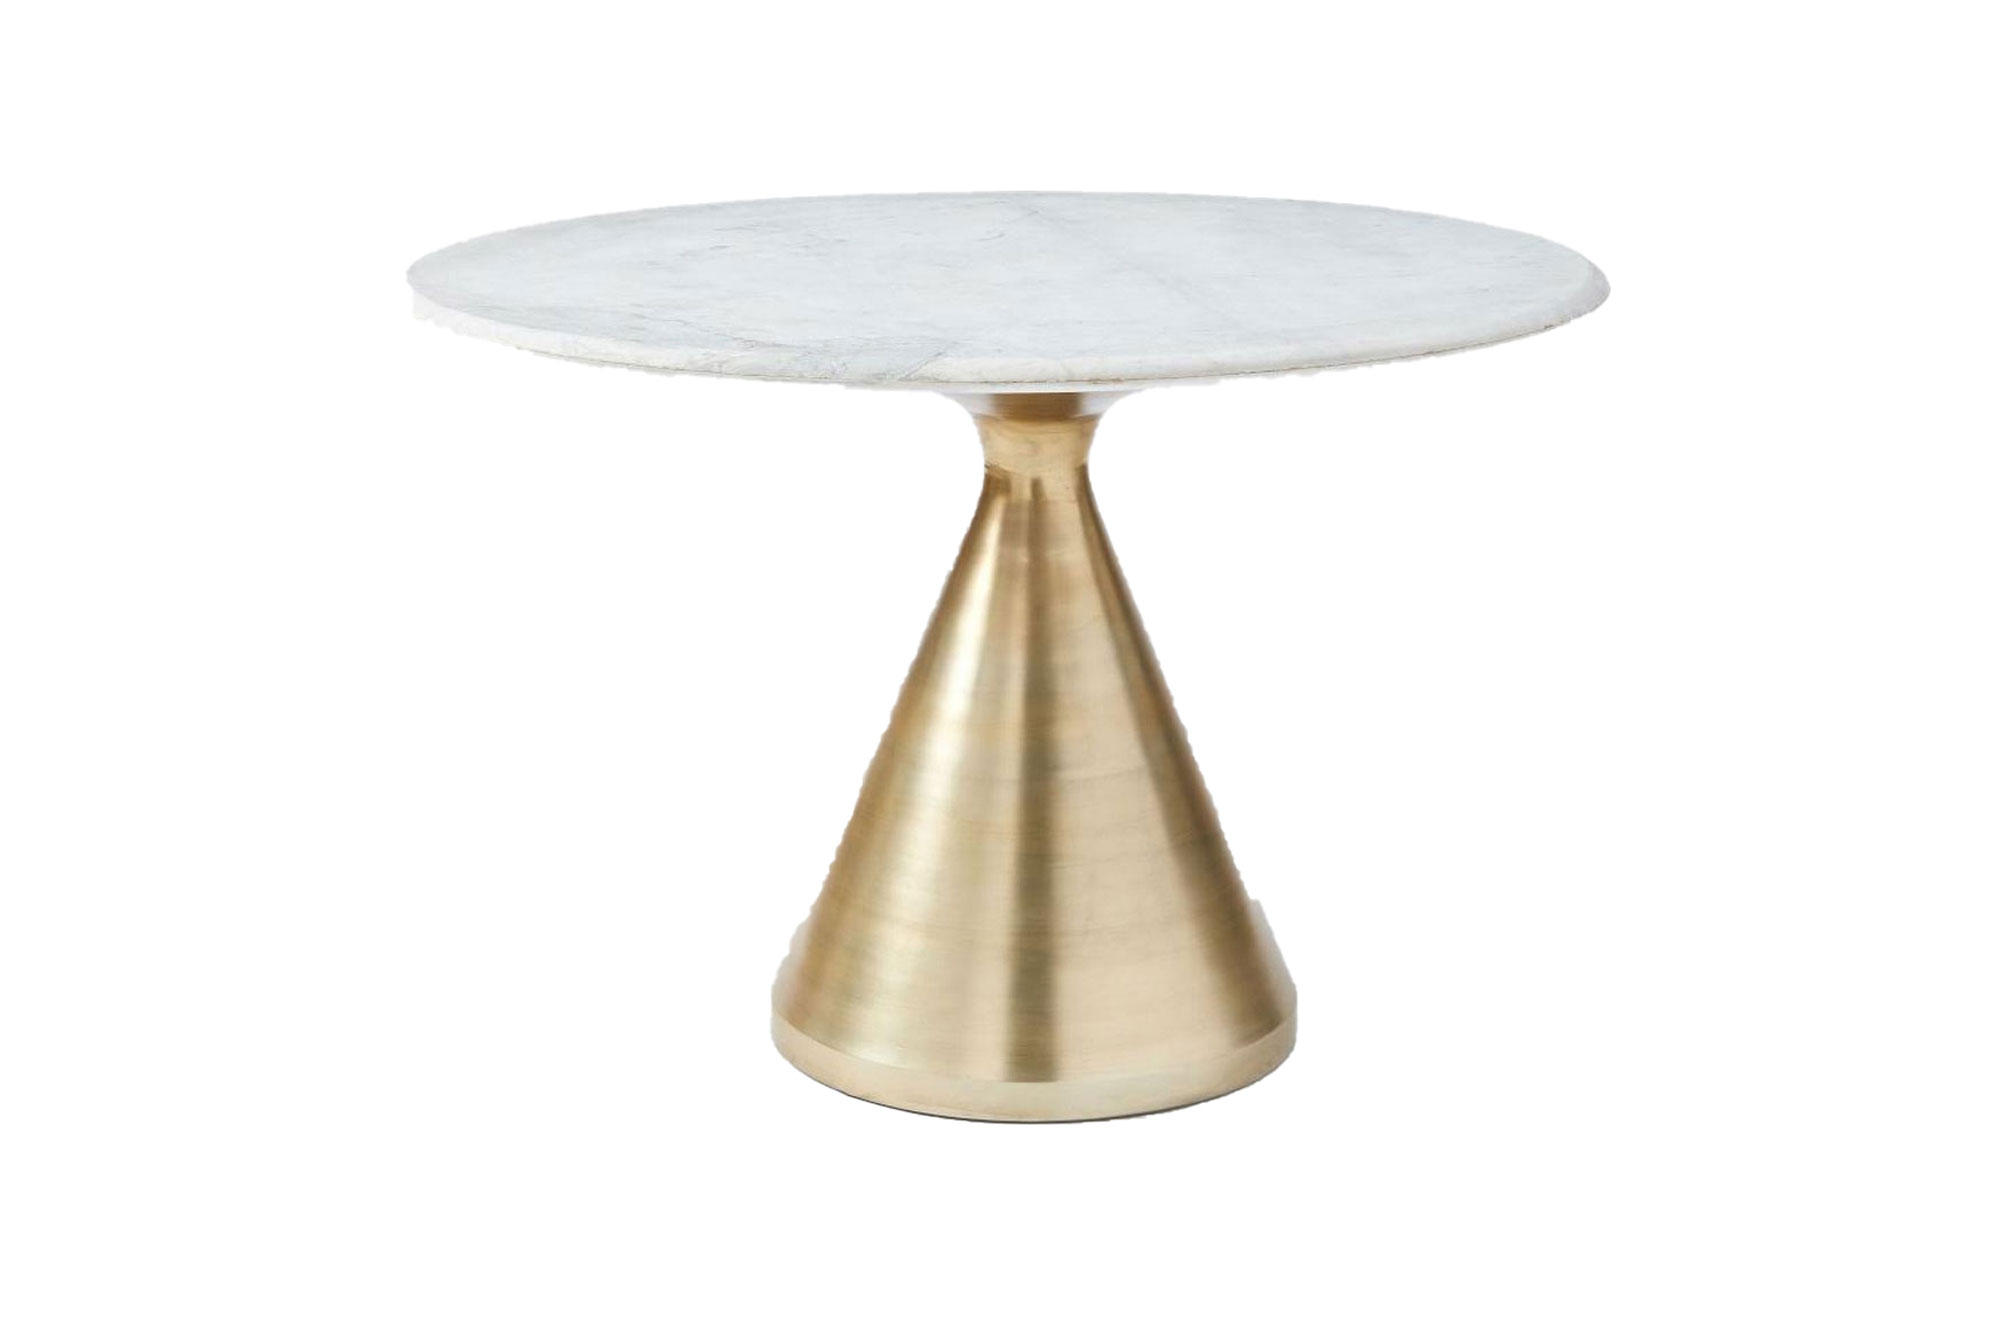 West Elm Silhouette 112 Round Dining Table Marble Top And Antique Brass